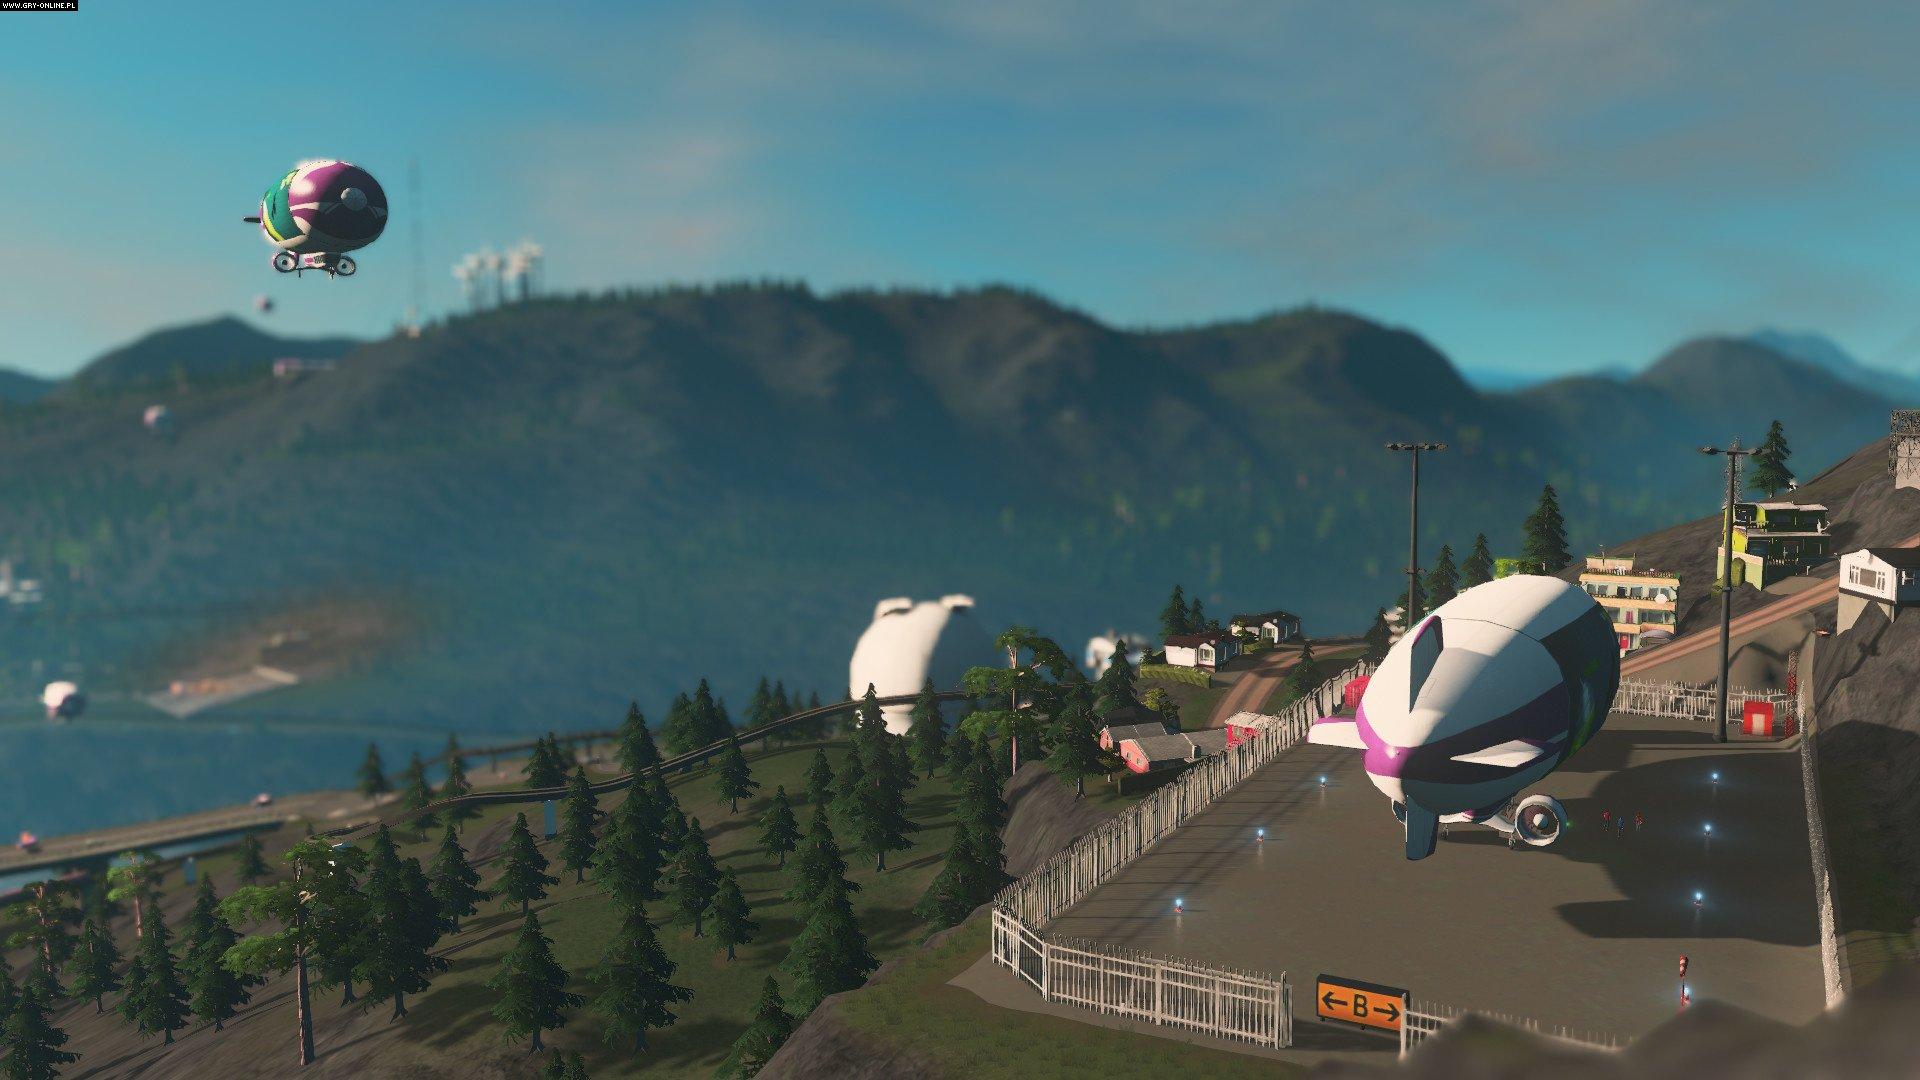 Cities: Skylines - Mass Transit PC Games Image 1/11, Colossal Order, Paradox Interactive